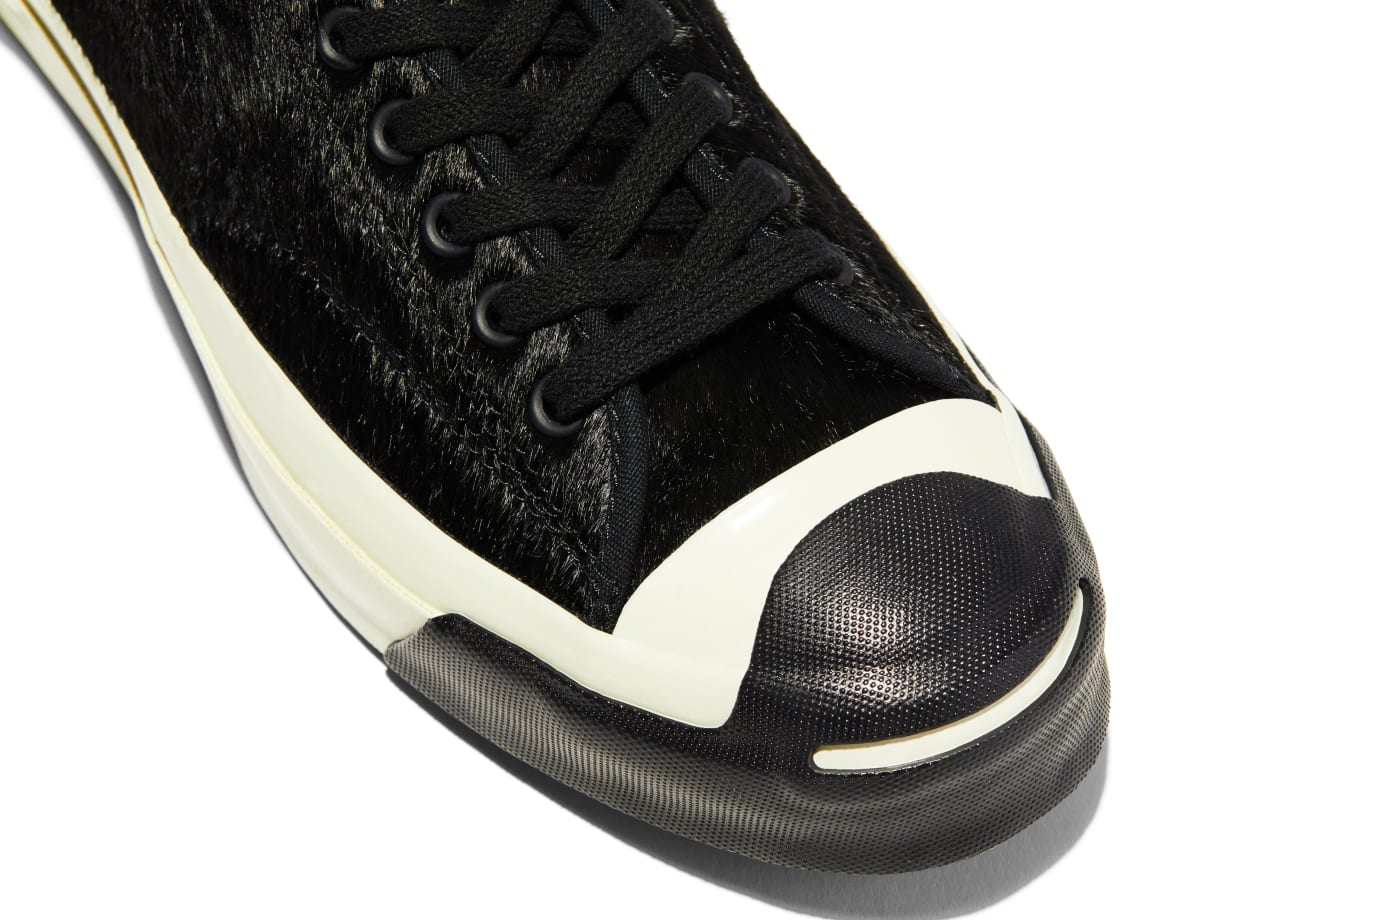 BornxRaised x Converse Jack Purcell 'Black' (Toe)